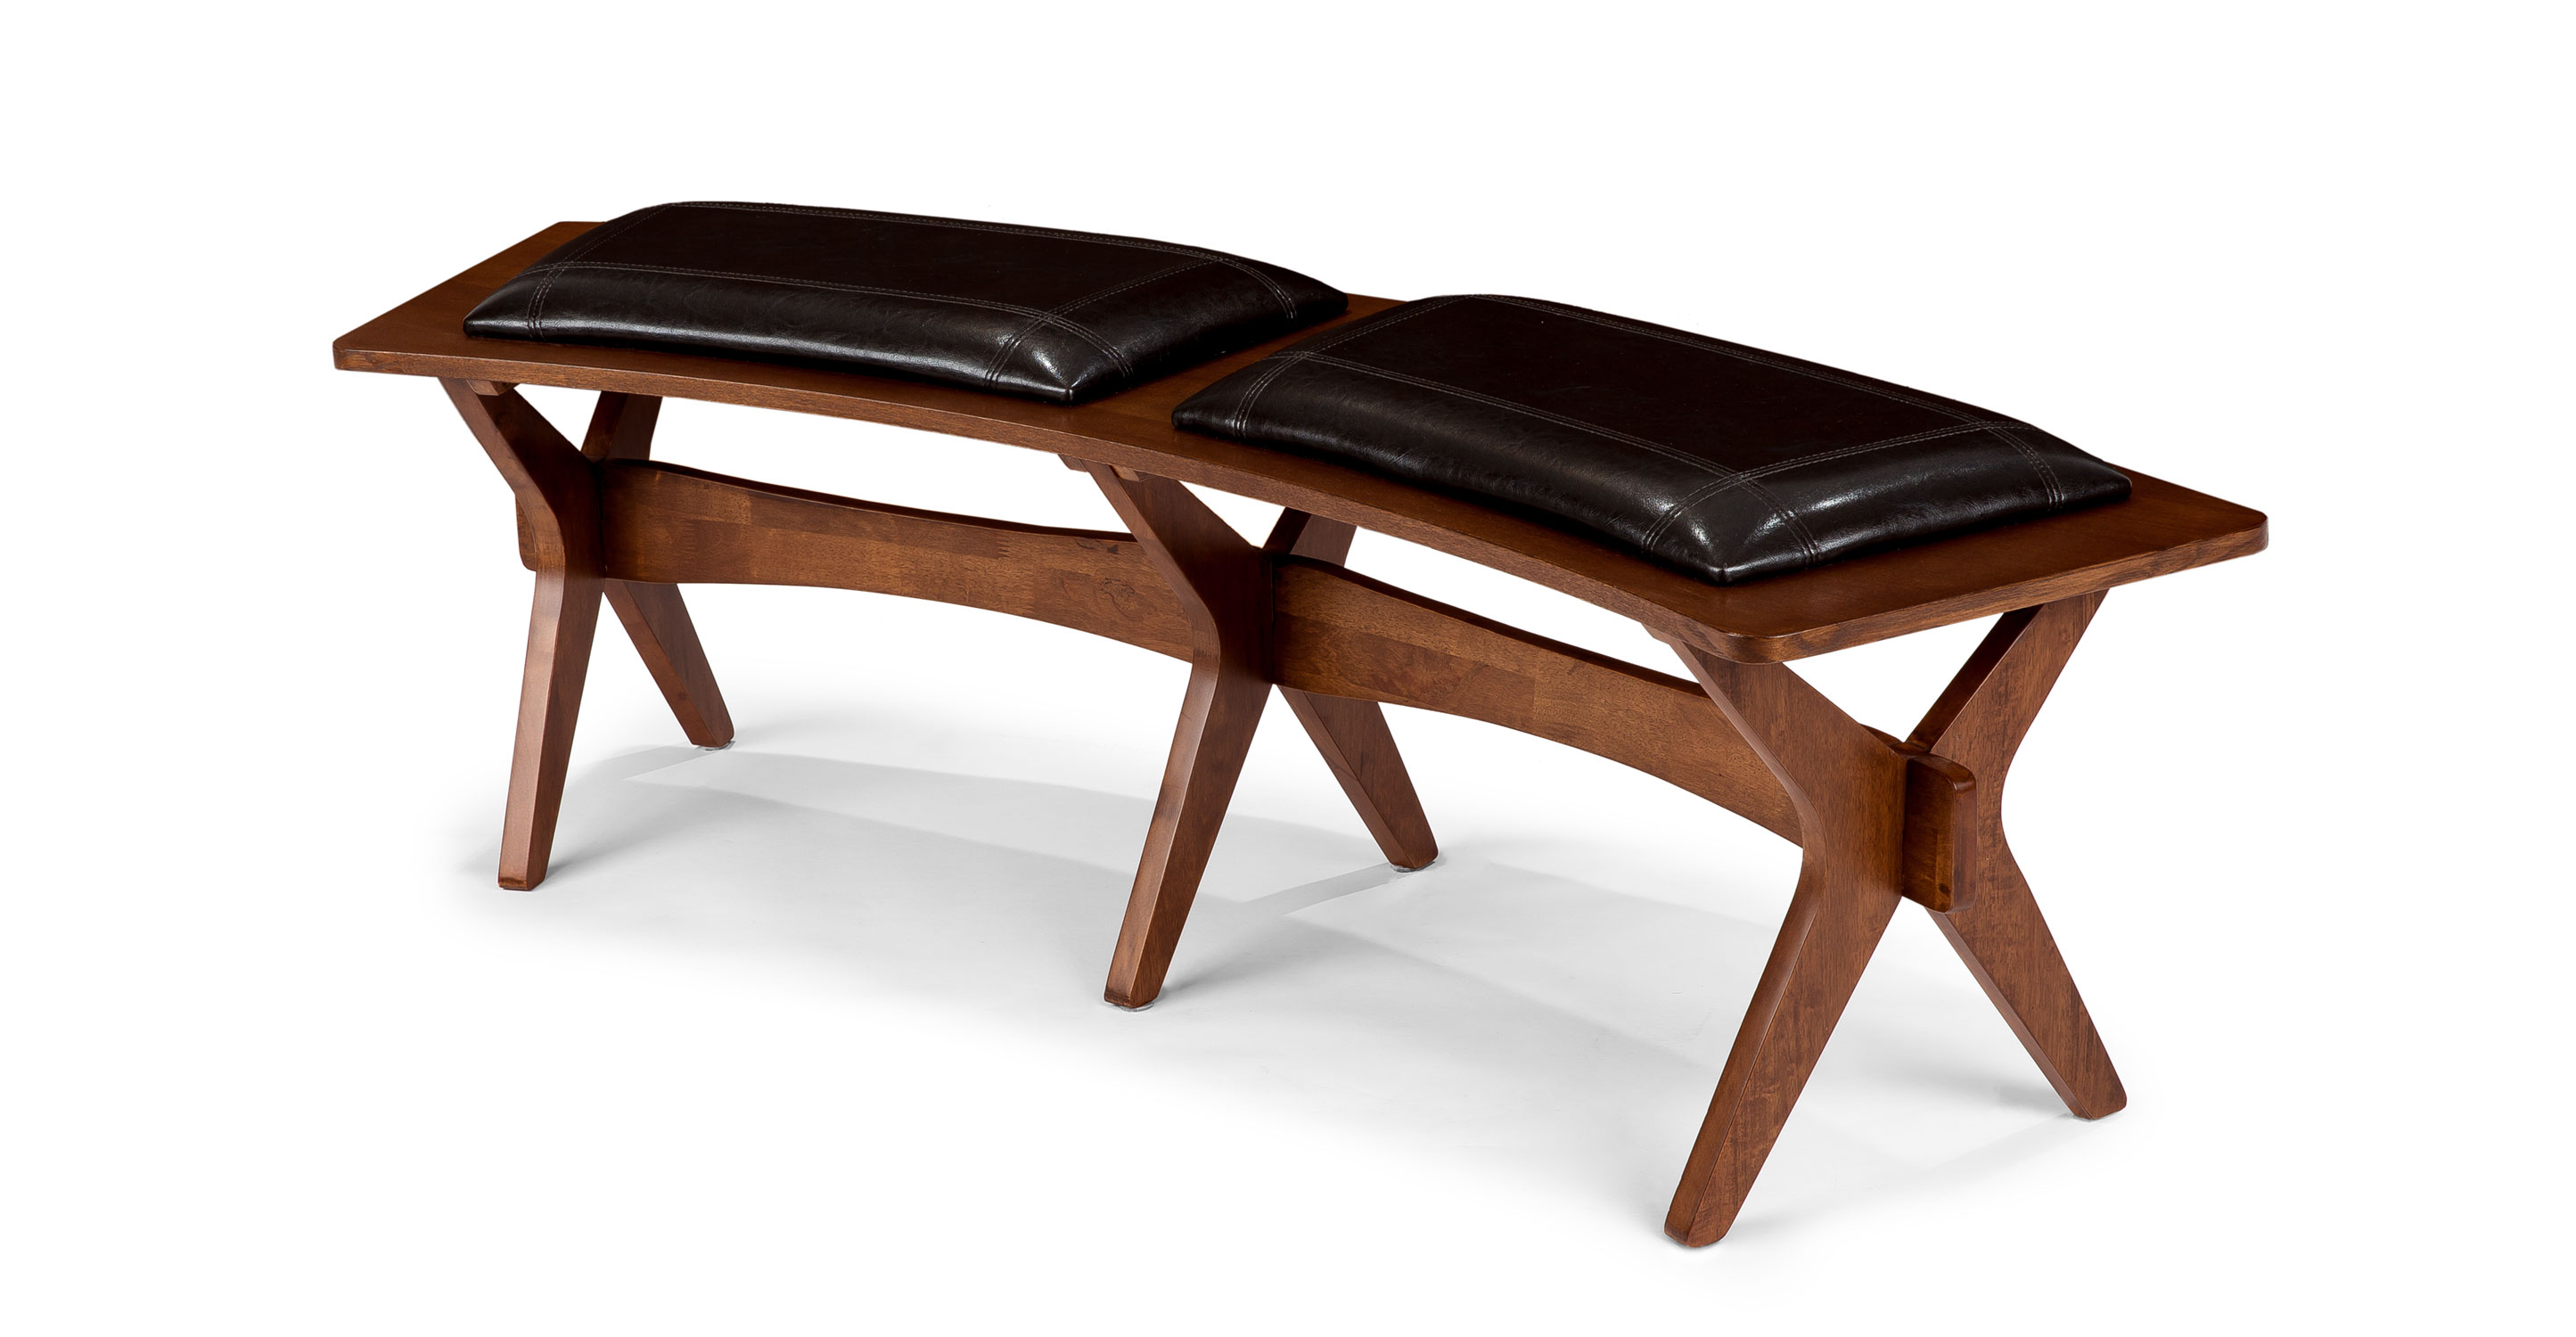 faux leather sofas canada klaussner dreamquest sleeper sofa conan dining bench - benches article   modern, mid ...